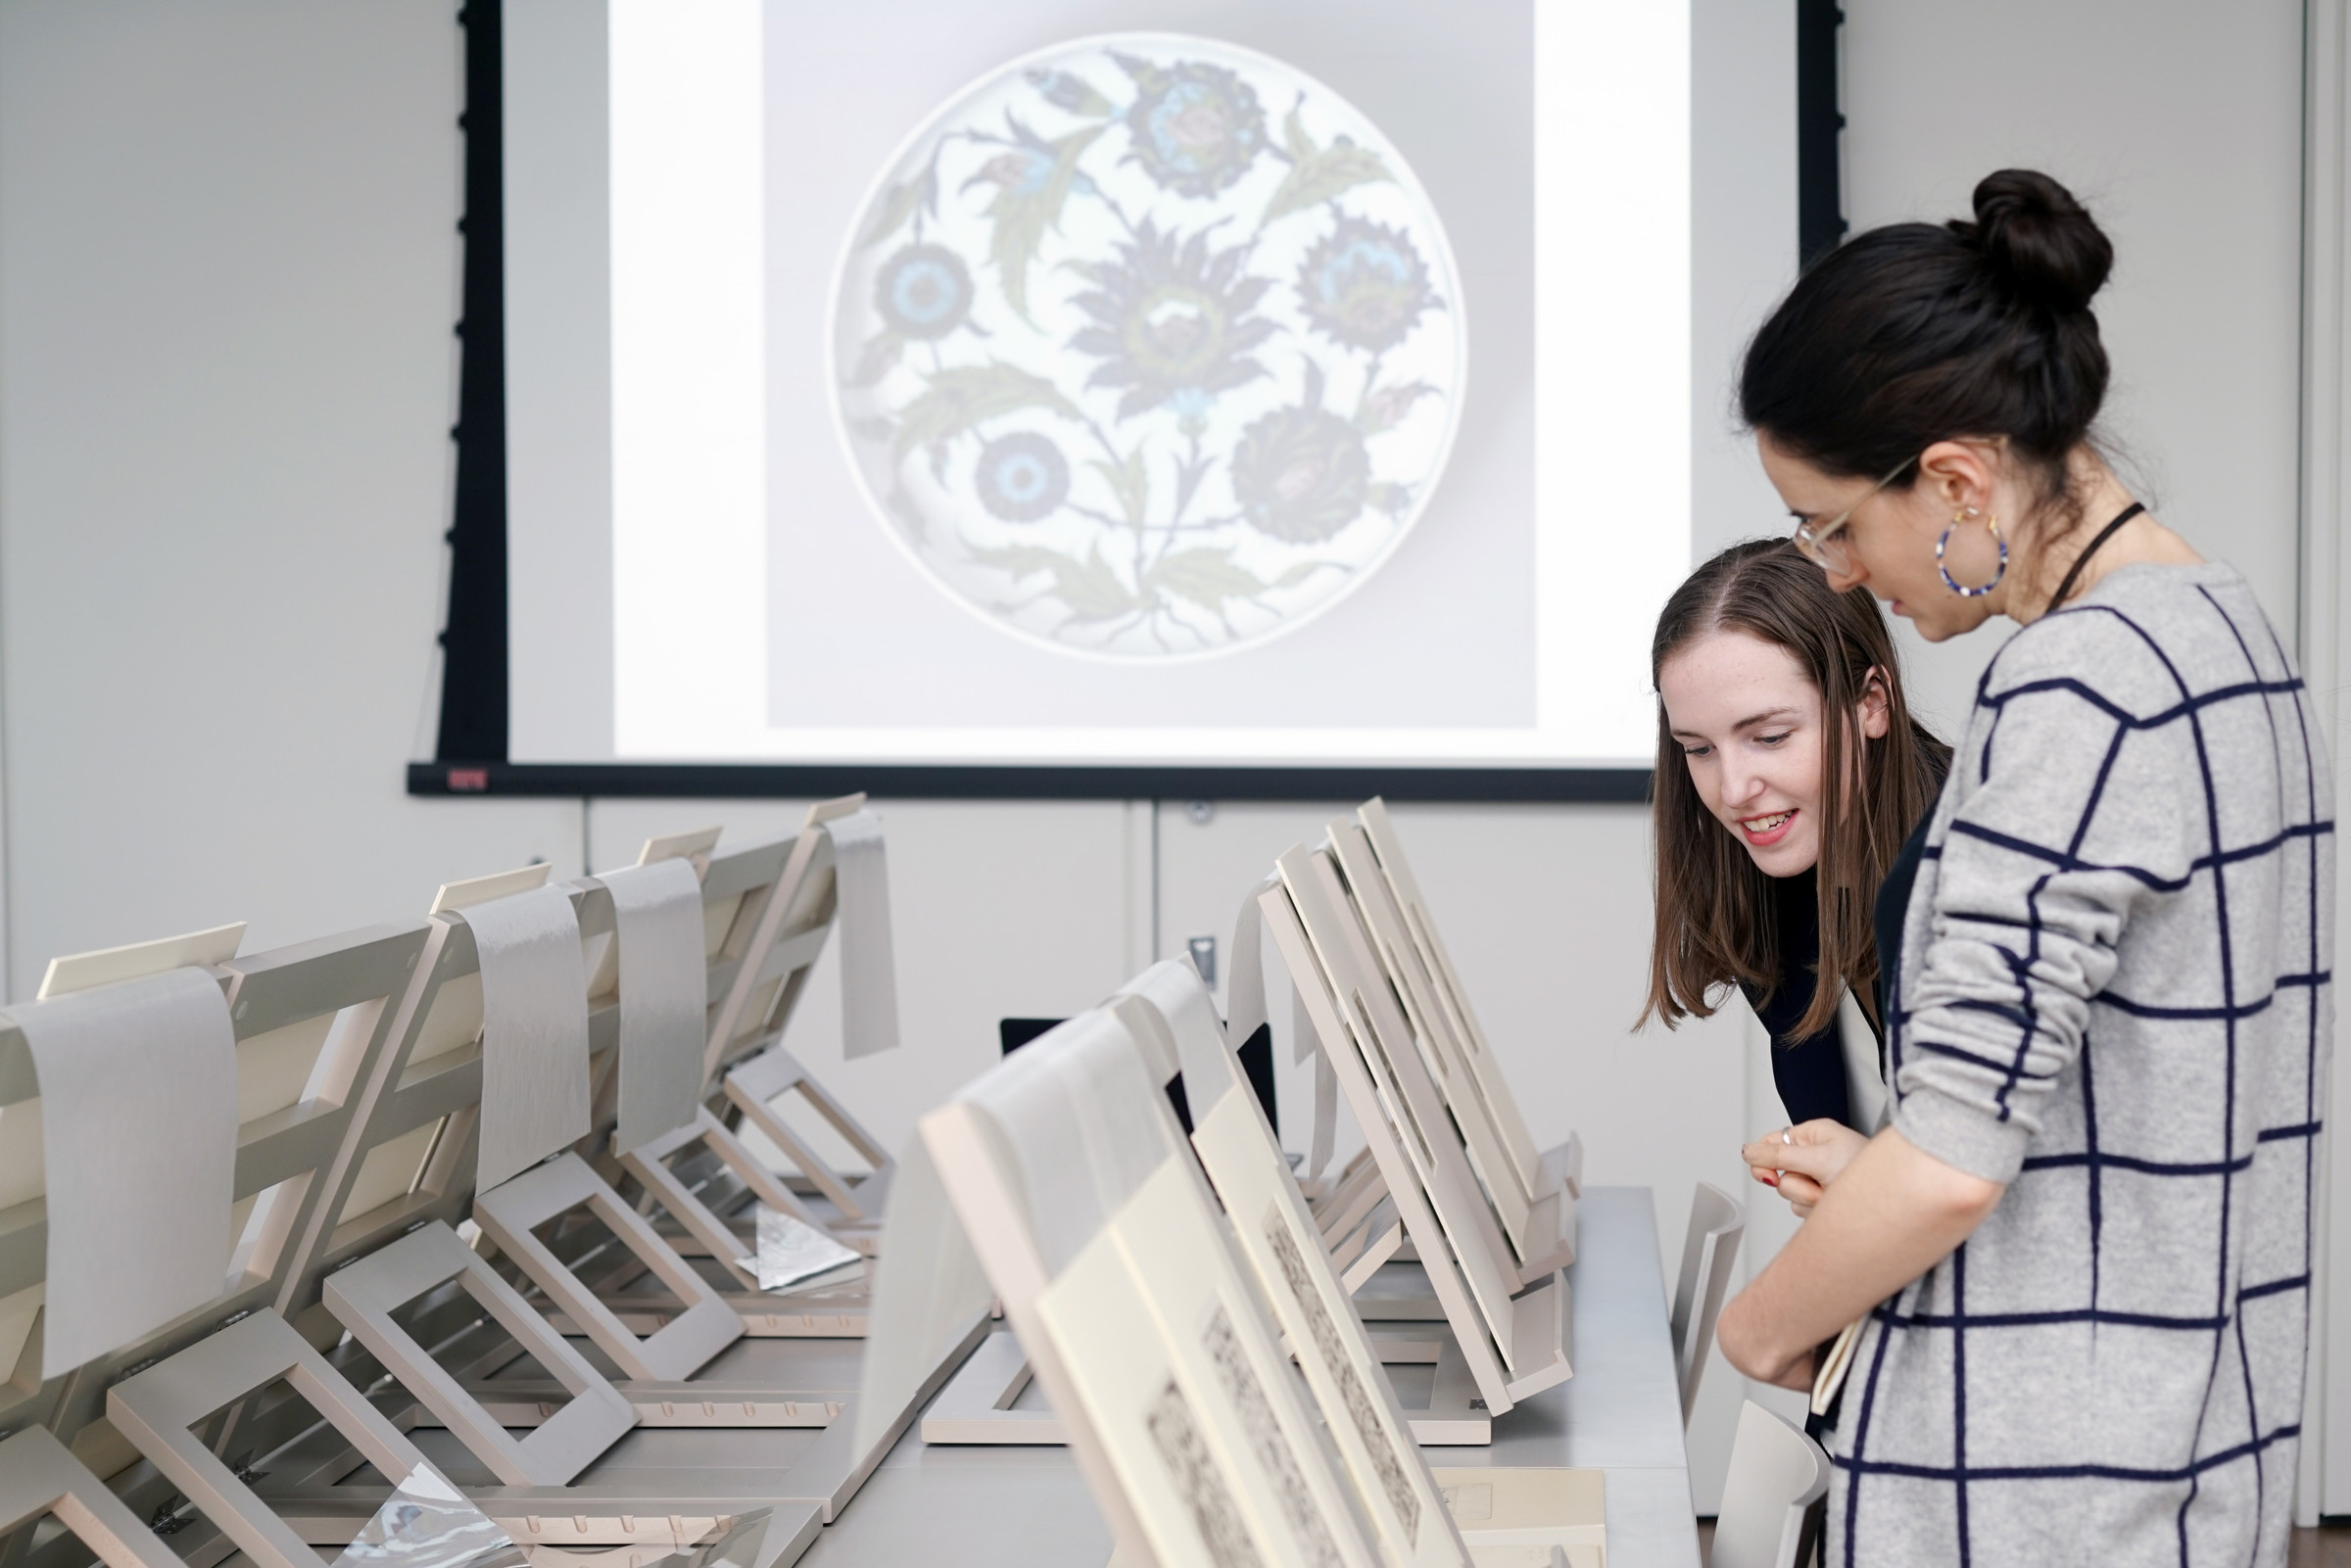 Two women look closely at one of several prints displayed on tabletop easels on a large gray table. In the background on a projector screen is an image of a dish decorated in blue and green flowers.